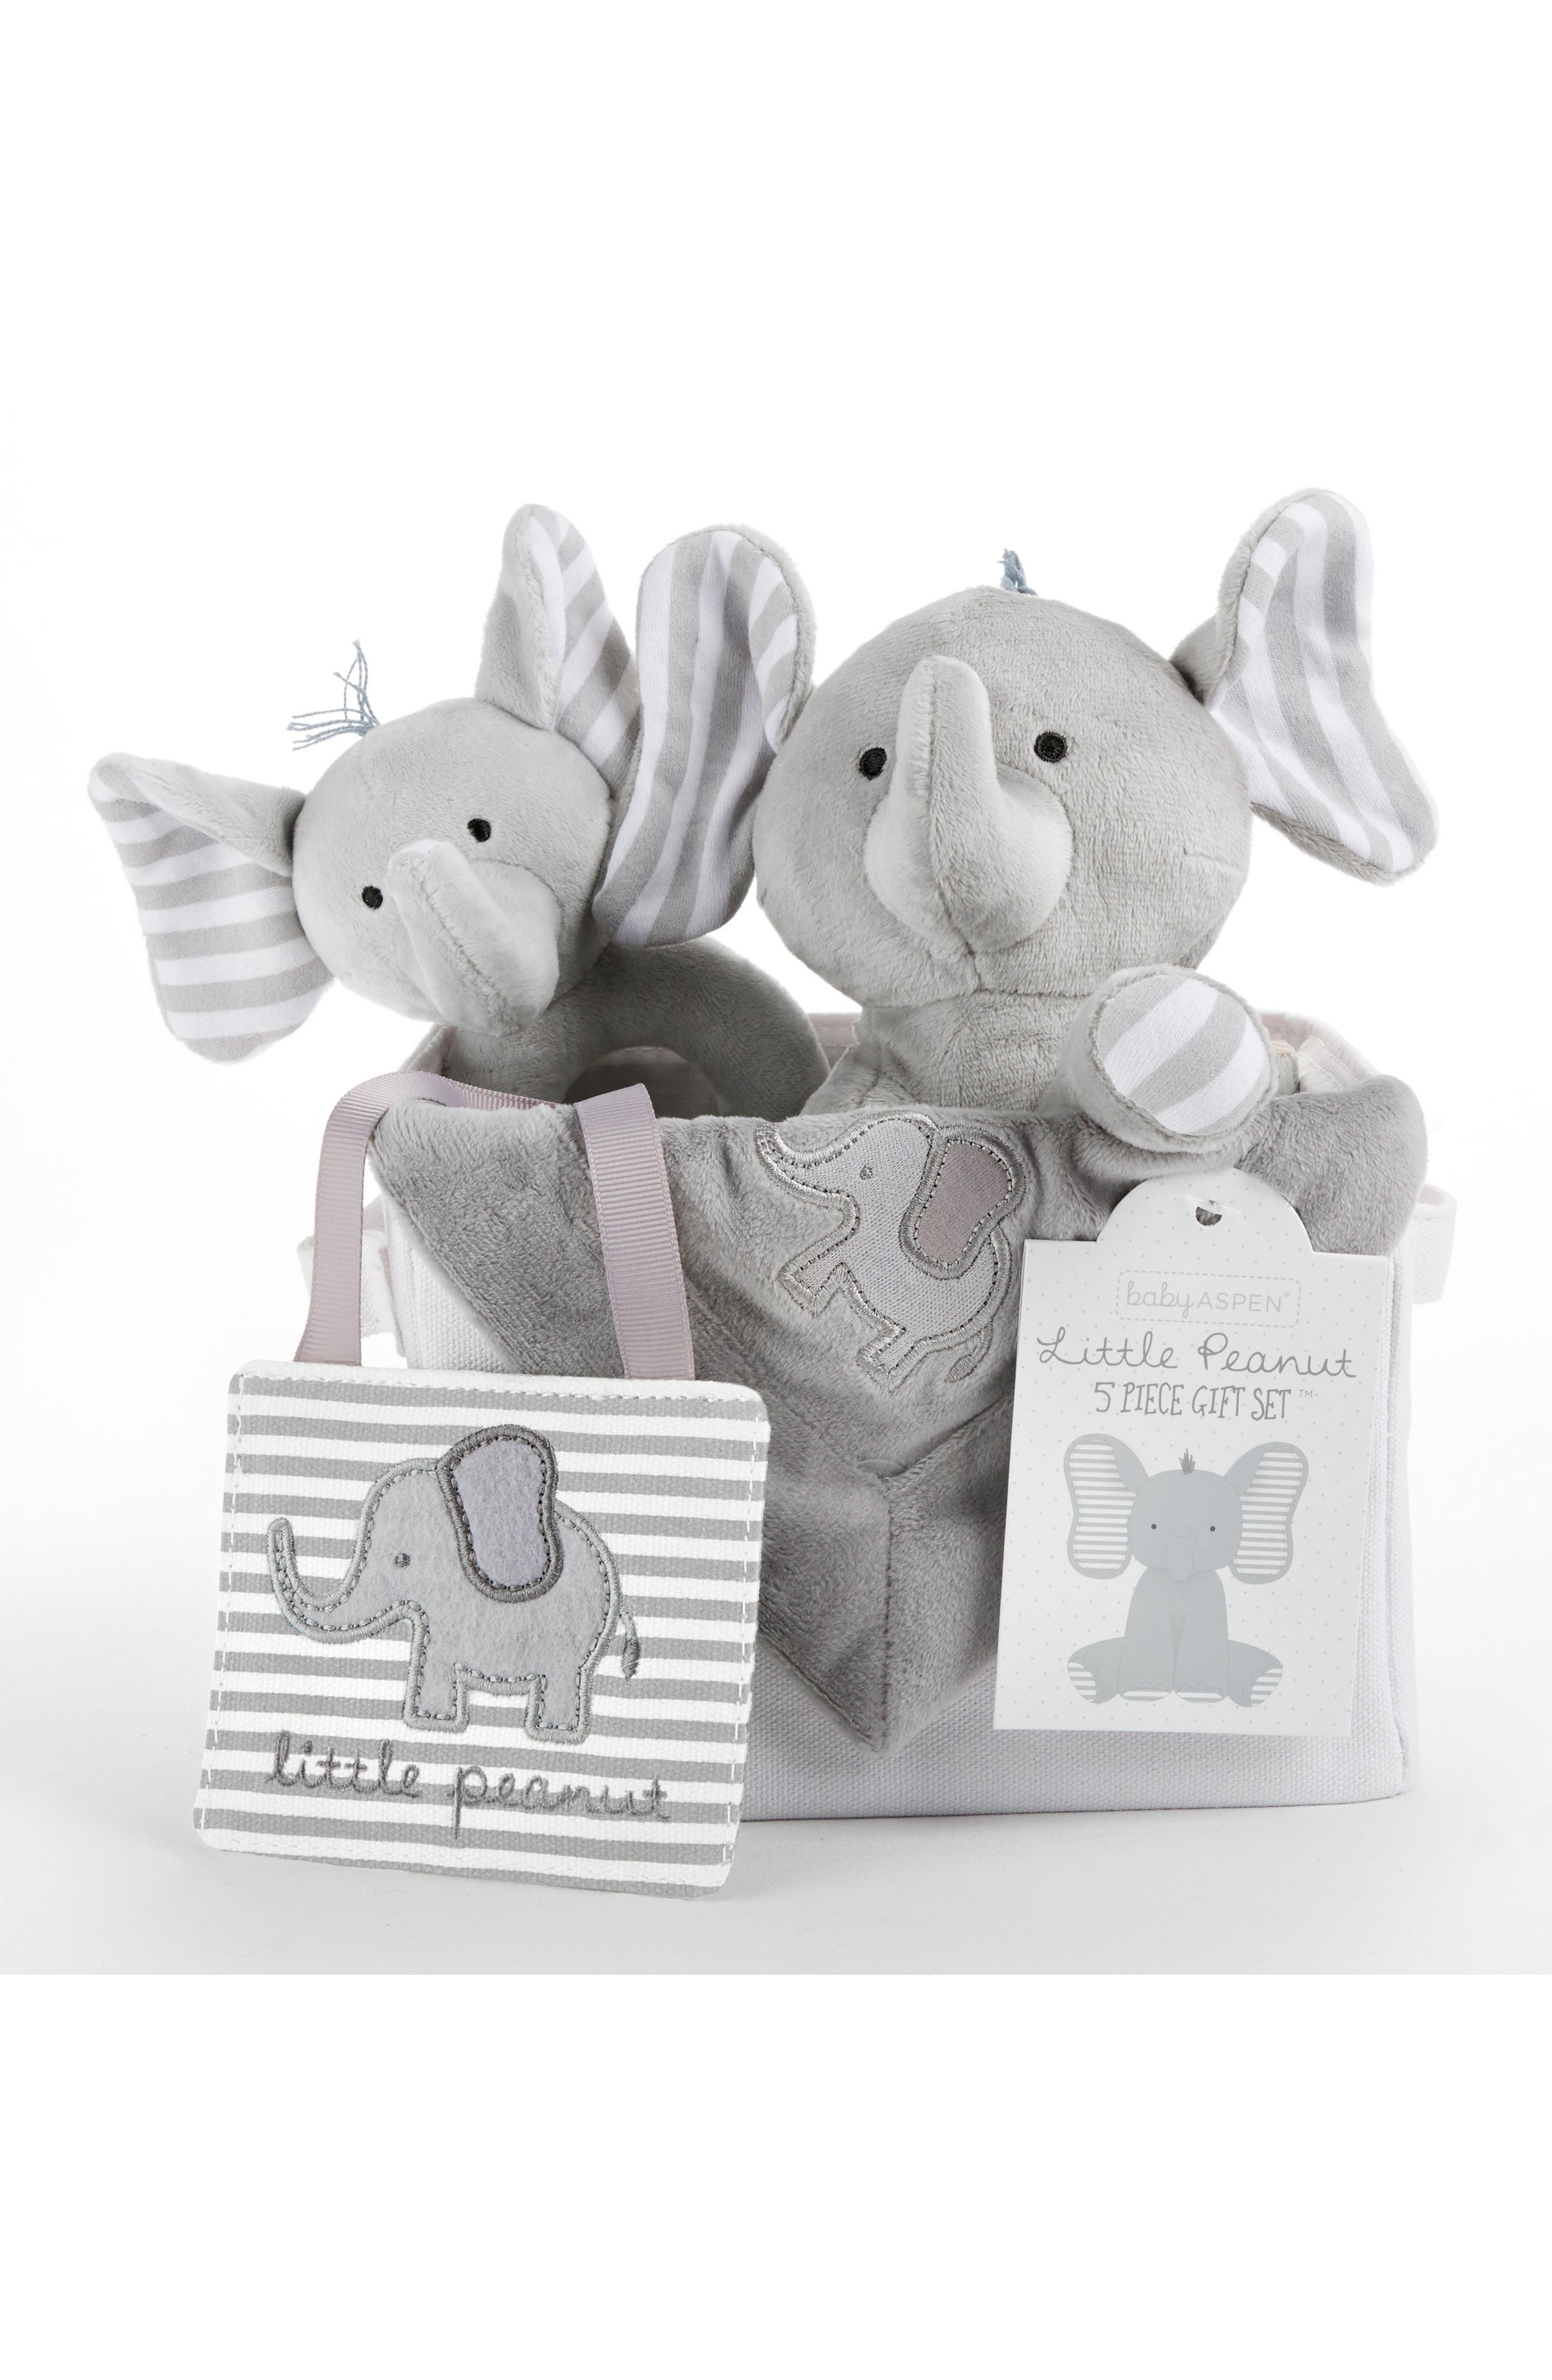 Baby Aspen Little Peanut Elephant 5-Piece Gift Set